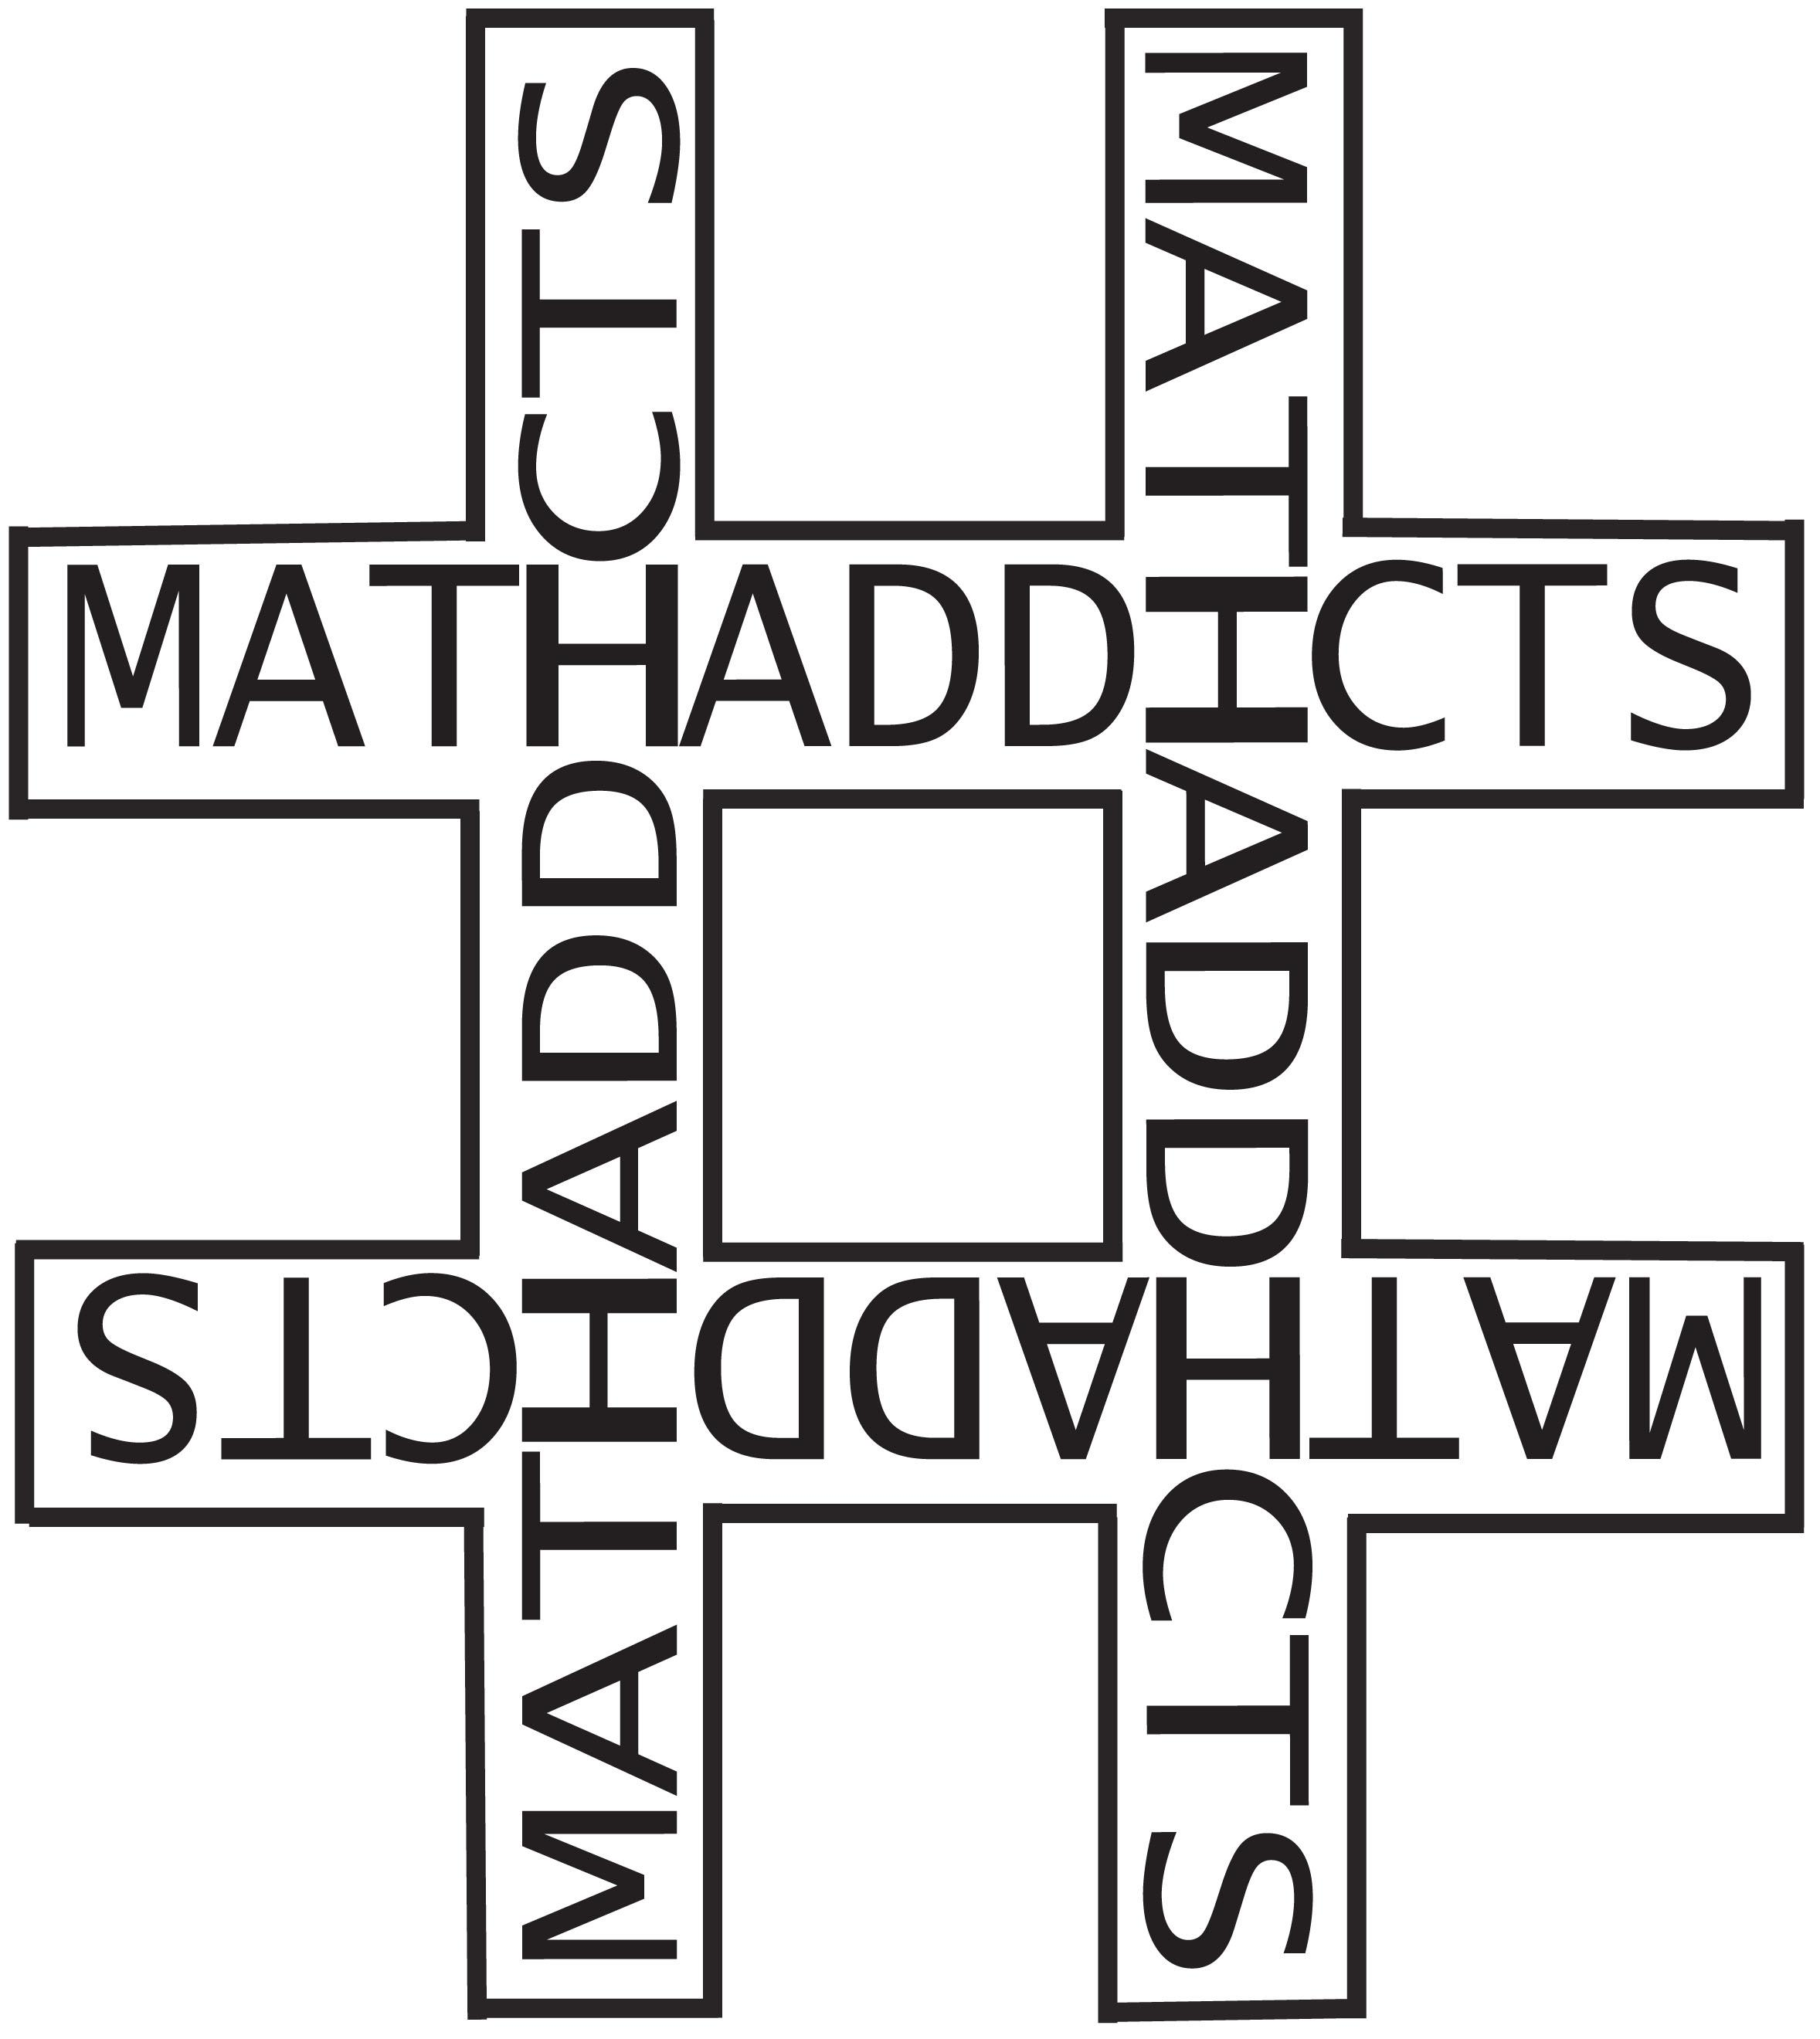 MathAddicts Thought Provoking - image 1 - student project